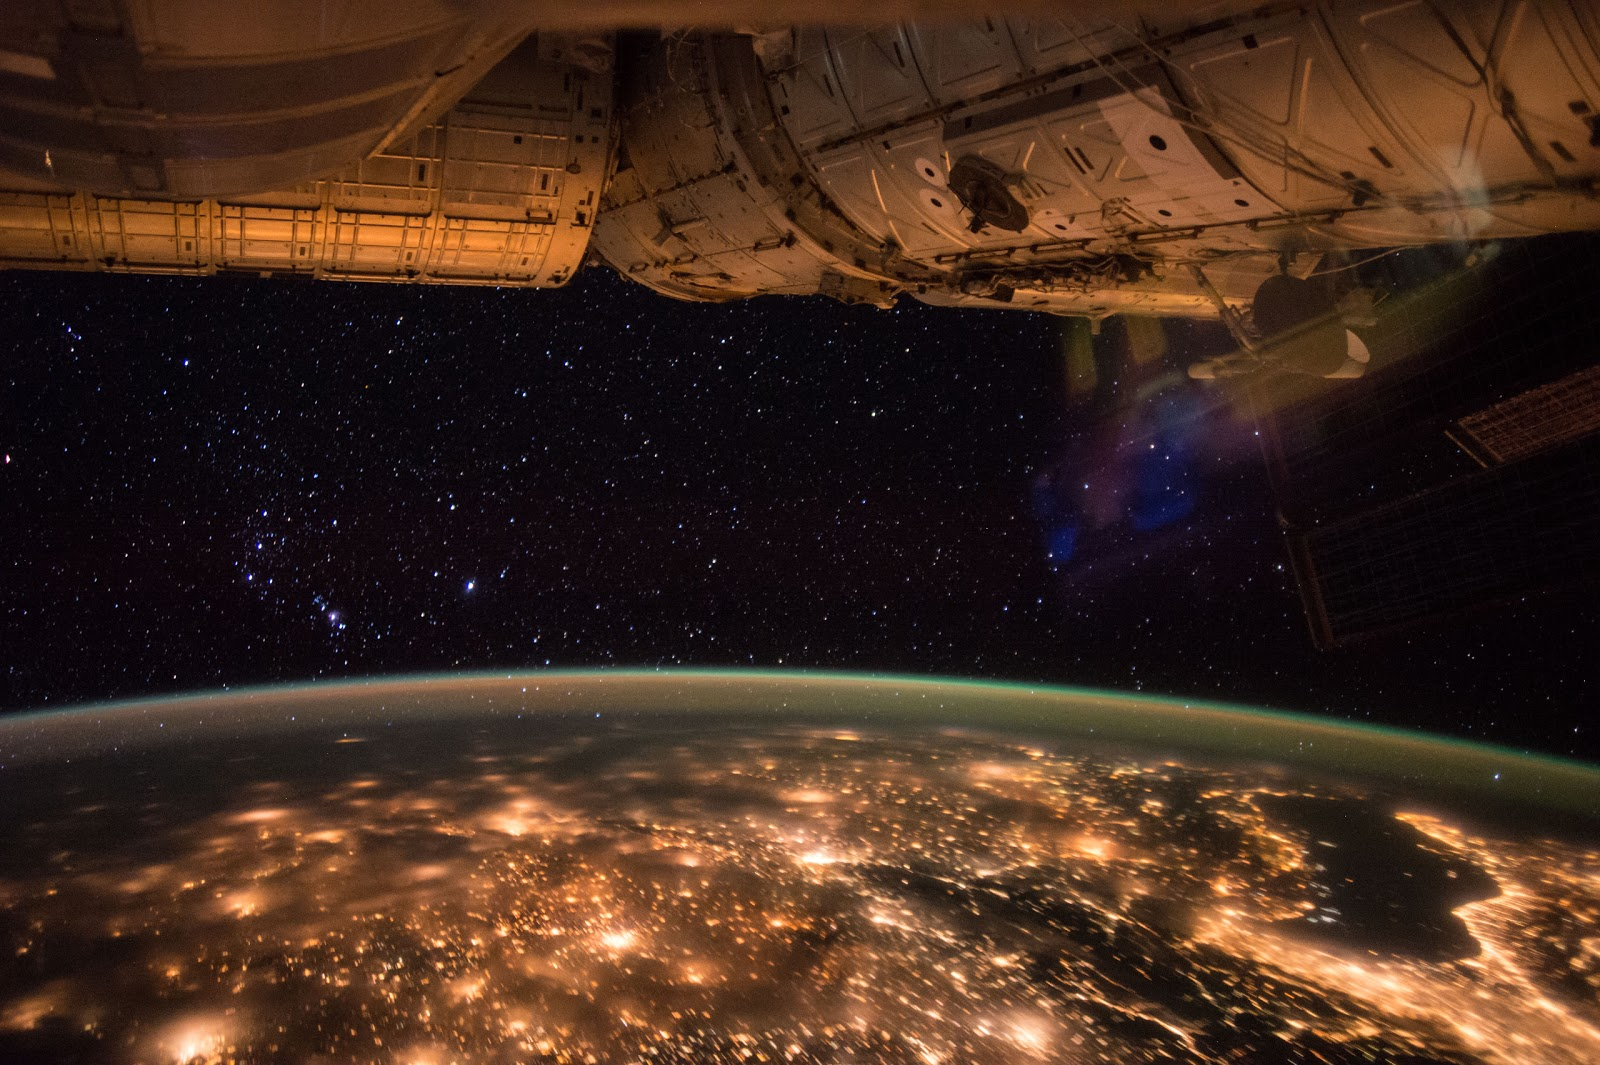 Europe at Night seen from the International Space Station ...